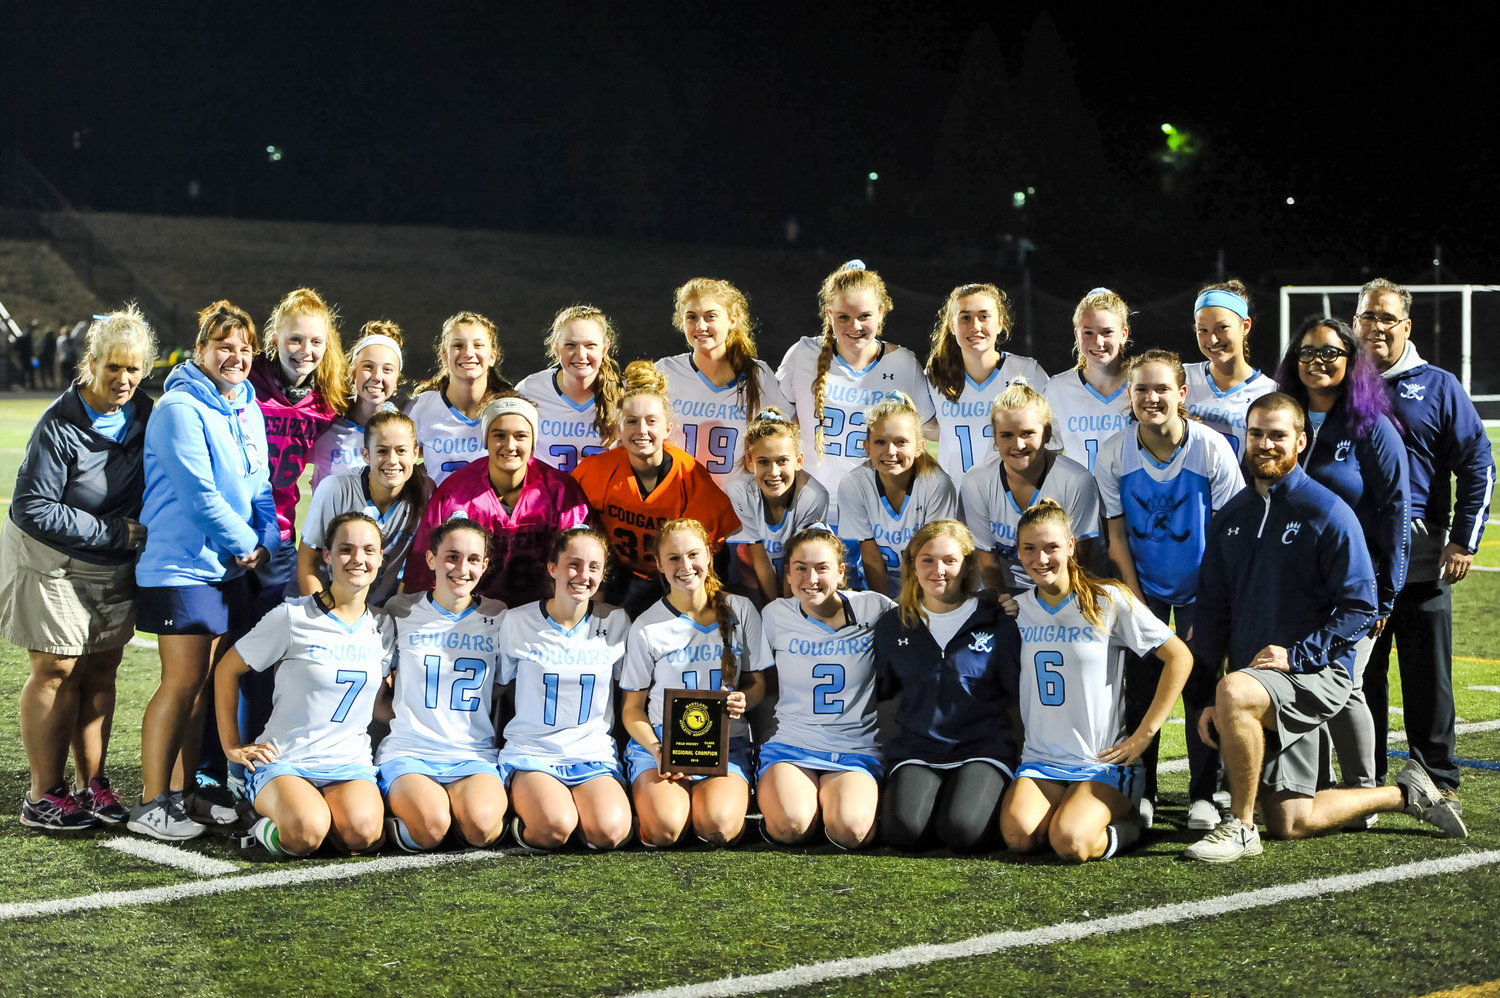 The Cougars won their fourth consecutive region championship on October 31, coming from behind to defeat Mount Hebron, 2-1.